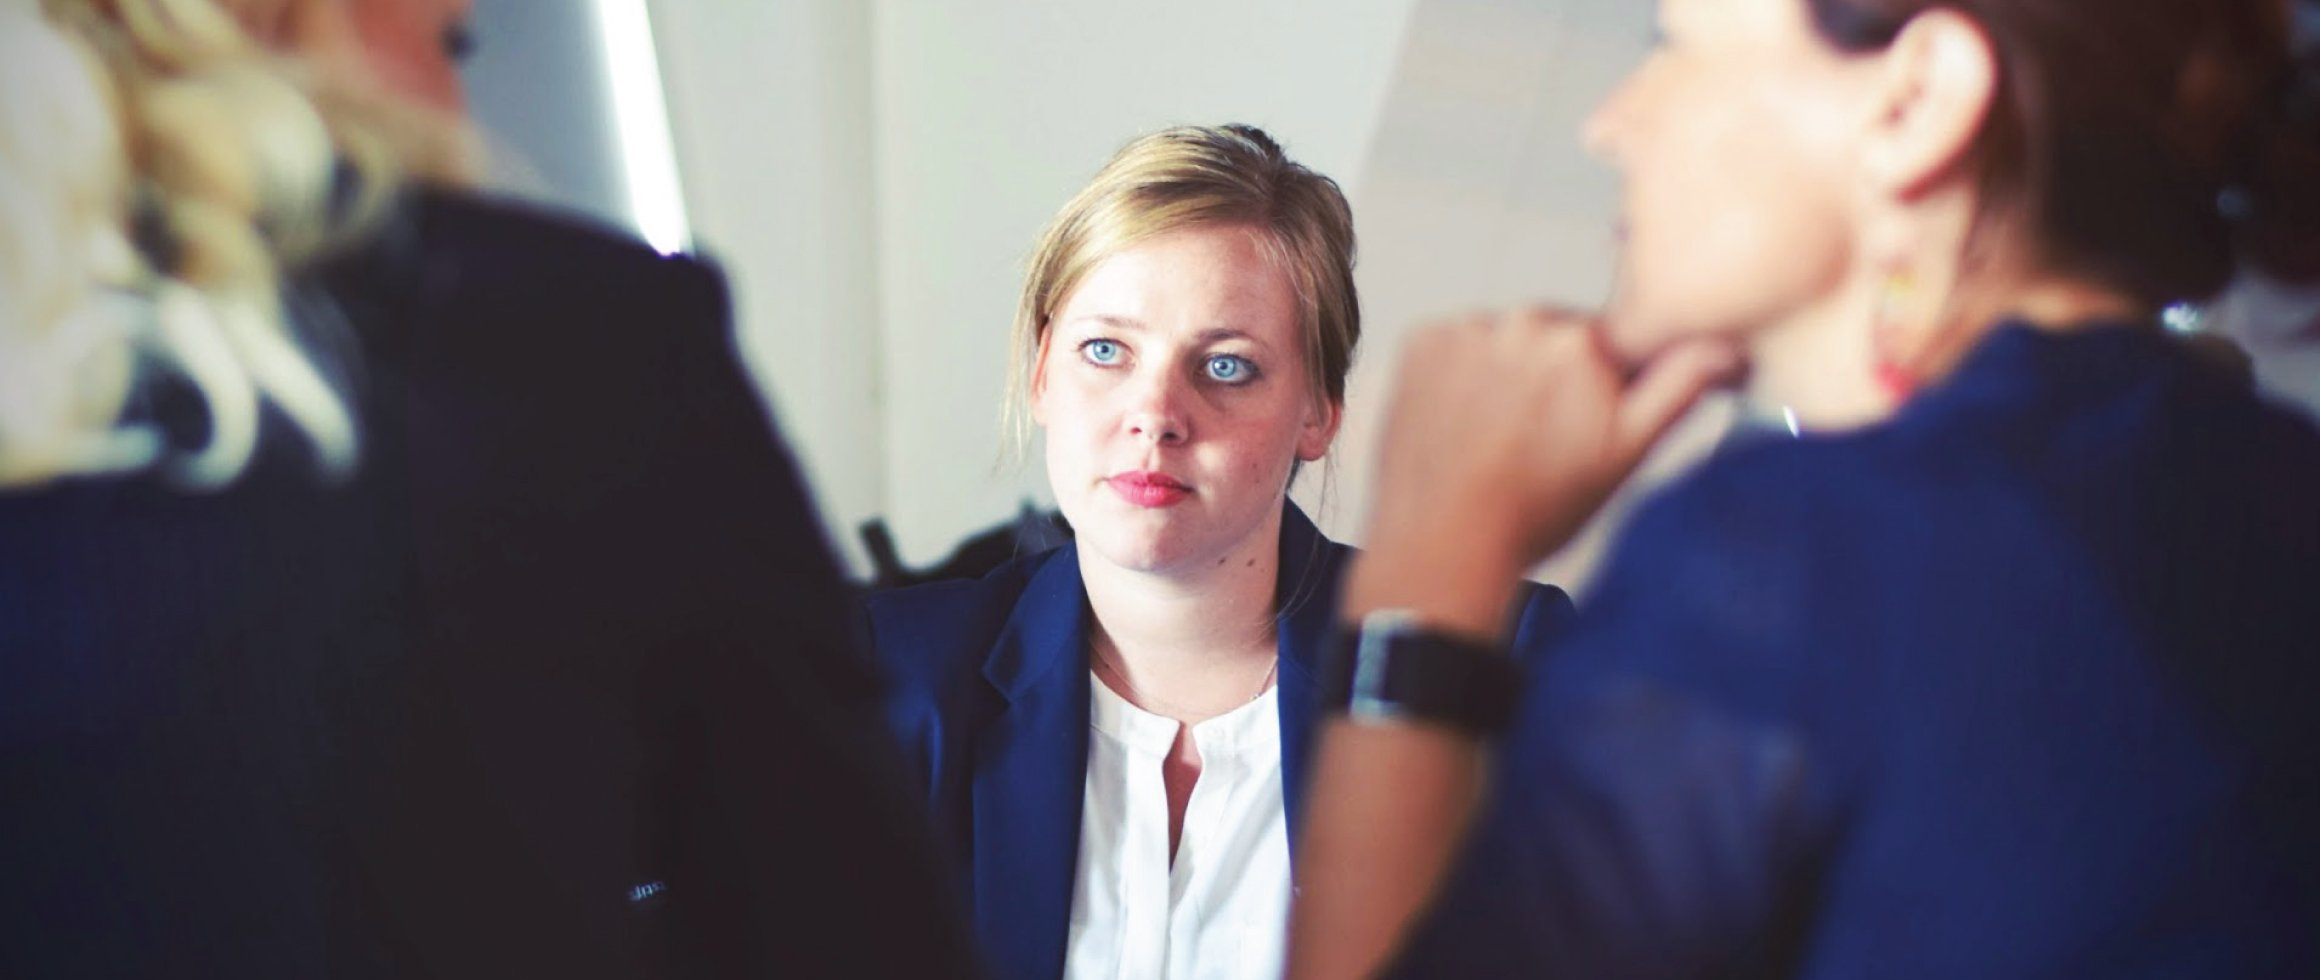 6 Ways To Appear Confident At interviews Even If You are Super Nervous